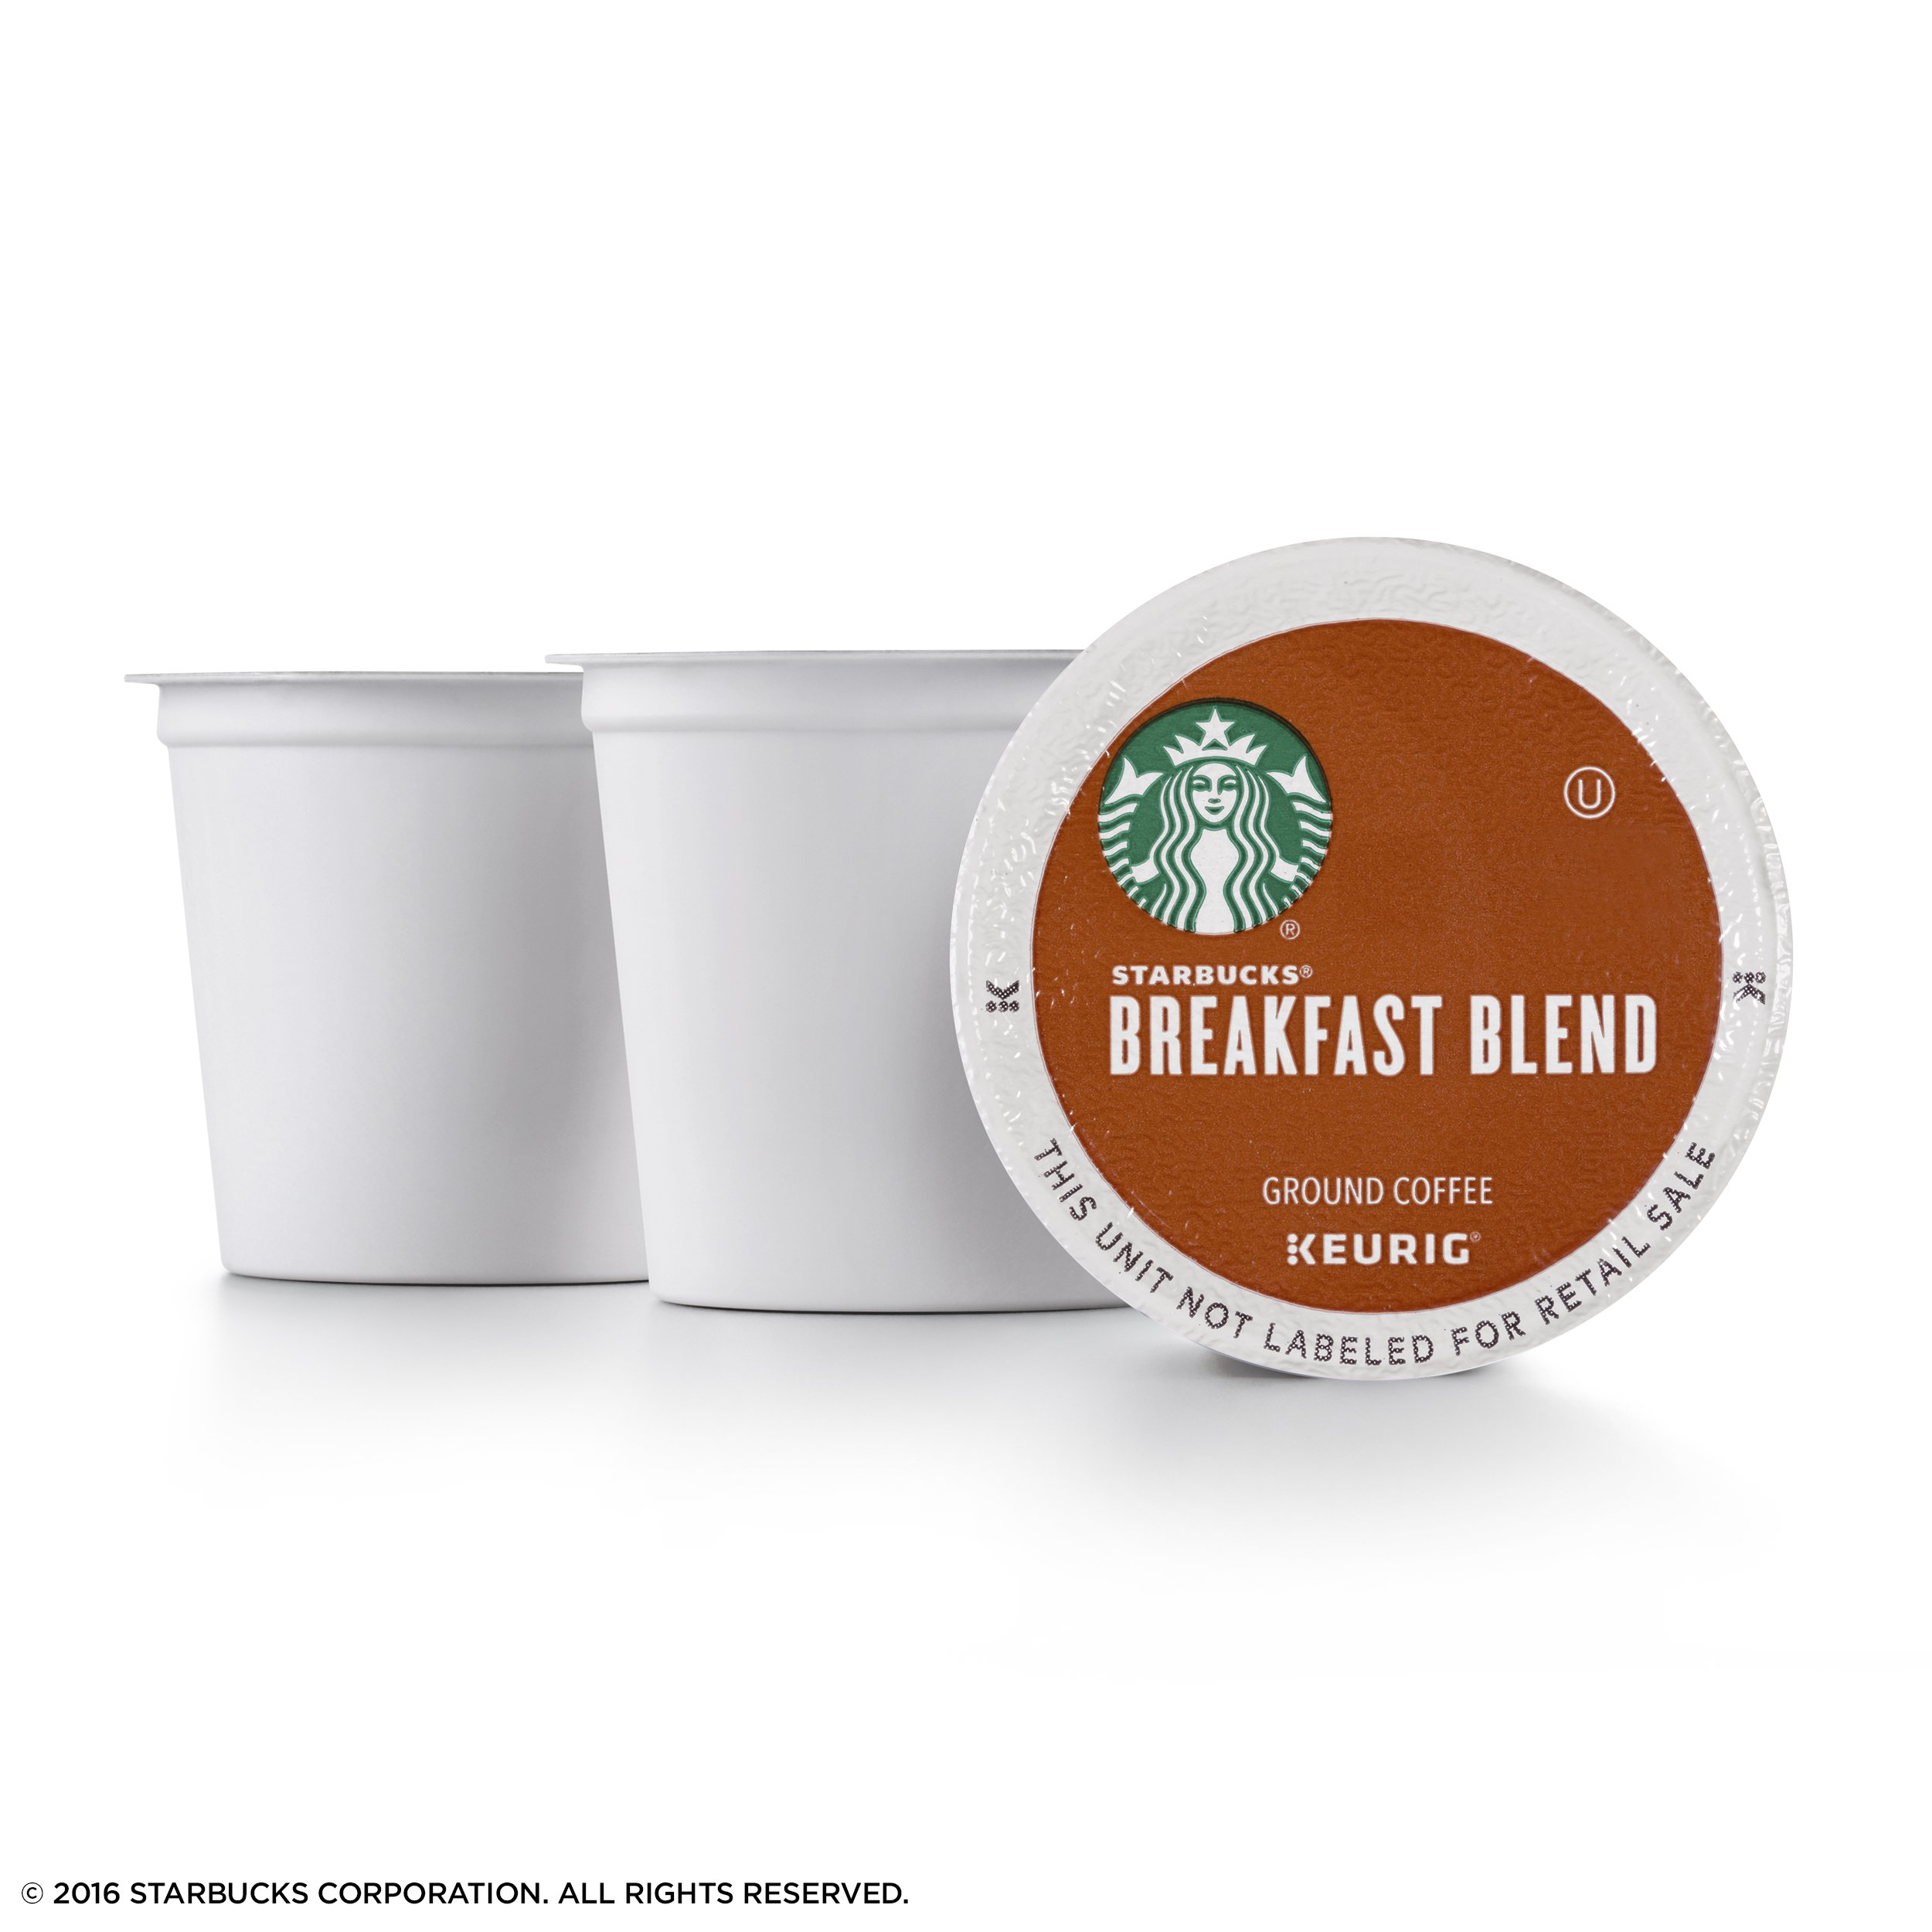 Starbucks Breakfast Blend Medium Roast Single Cup Coffee for Keurig Brewers, 6 Boxes of 10 (60 Total K-Cup pods) by Starbucks (Image #2)